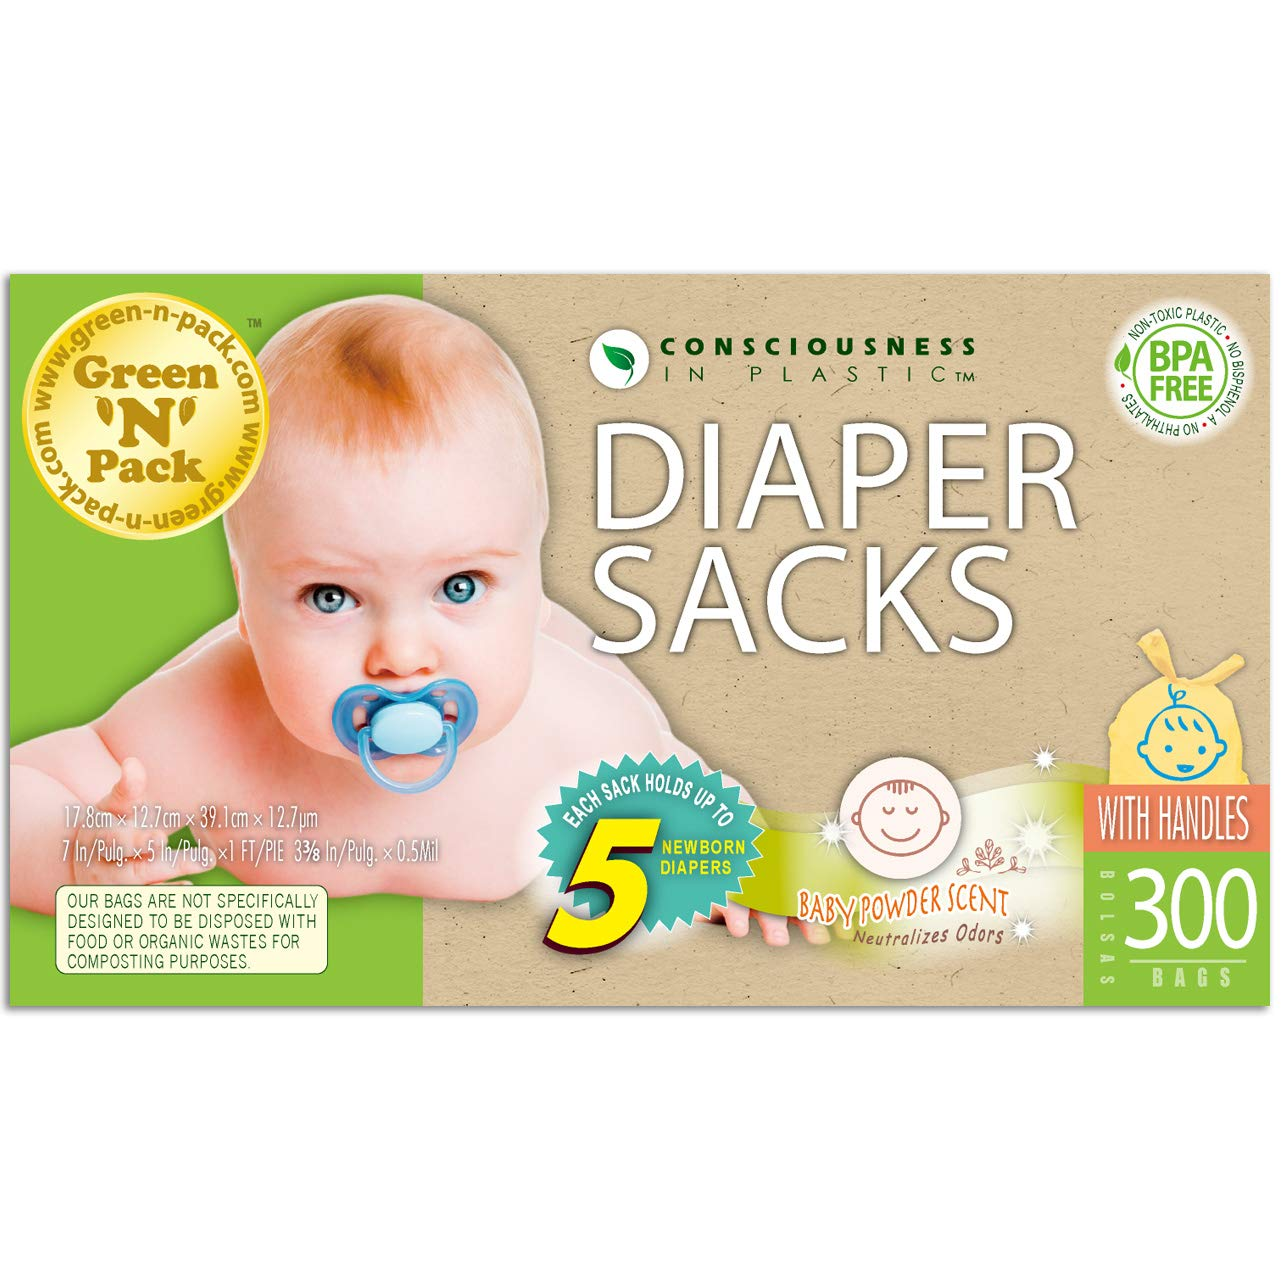 Green N Pack Nappy Easy-Tie Scented Baby Diaper Sacks, 300 Count Nappy300